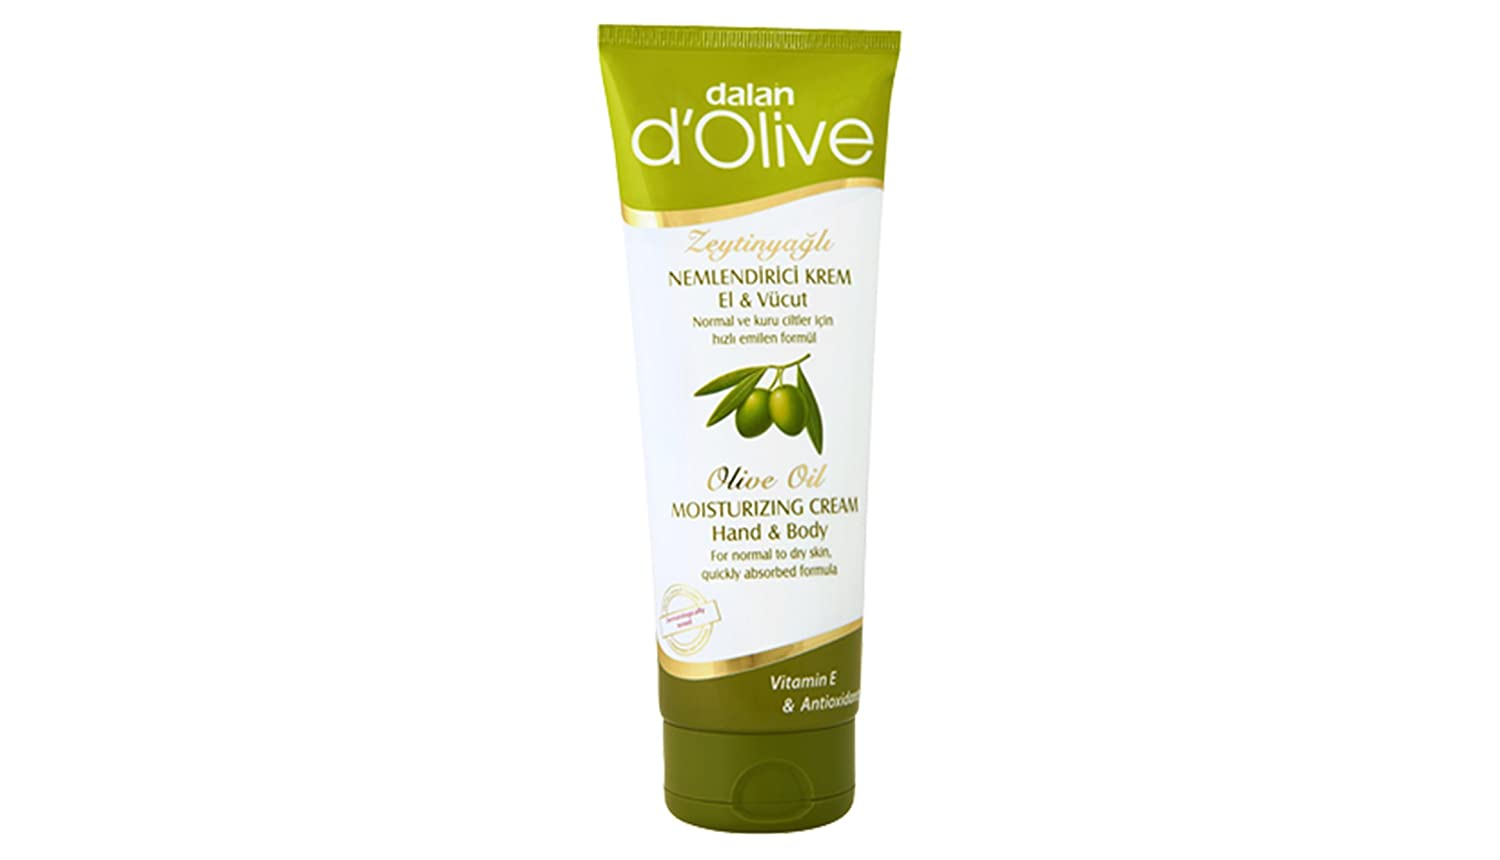 Dalan Dolive Moisturizing Hand& Body Cream 250 ml (8.4 oz) by dalan d'Olive